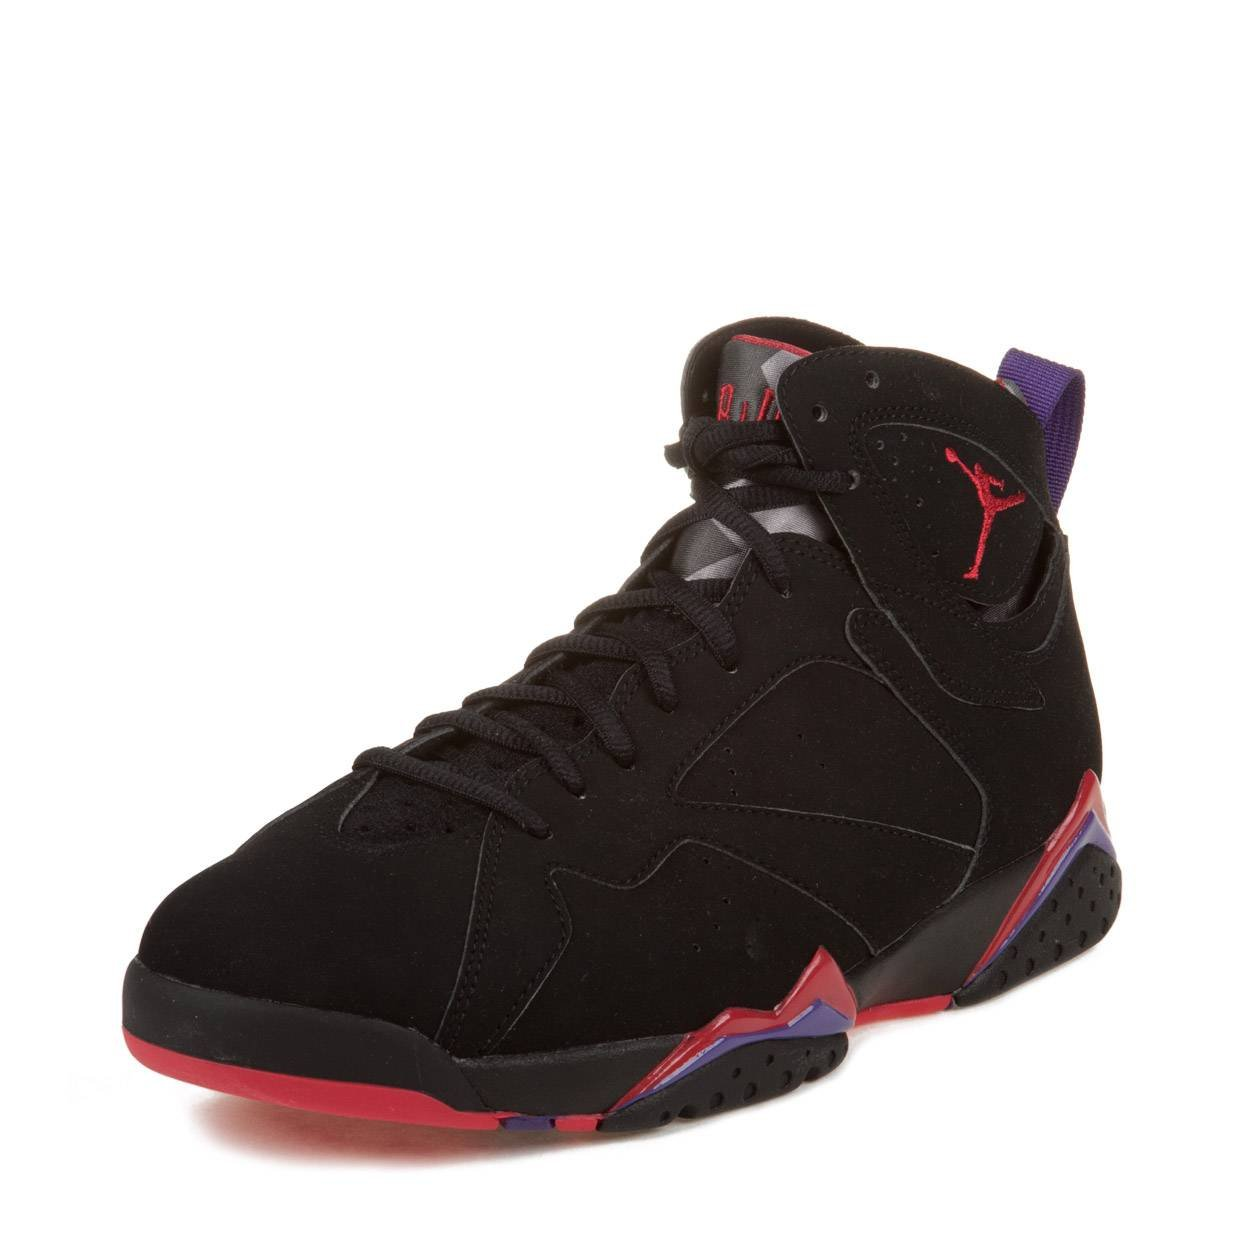 pretty nice e50c9 4d842 Amazon.com   Nike Mens Air Jordan 7 Retro Raptor Black True Red-Dark  Charcoal-Purple Leather Basketball Shoes Size 10.5   Basketball